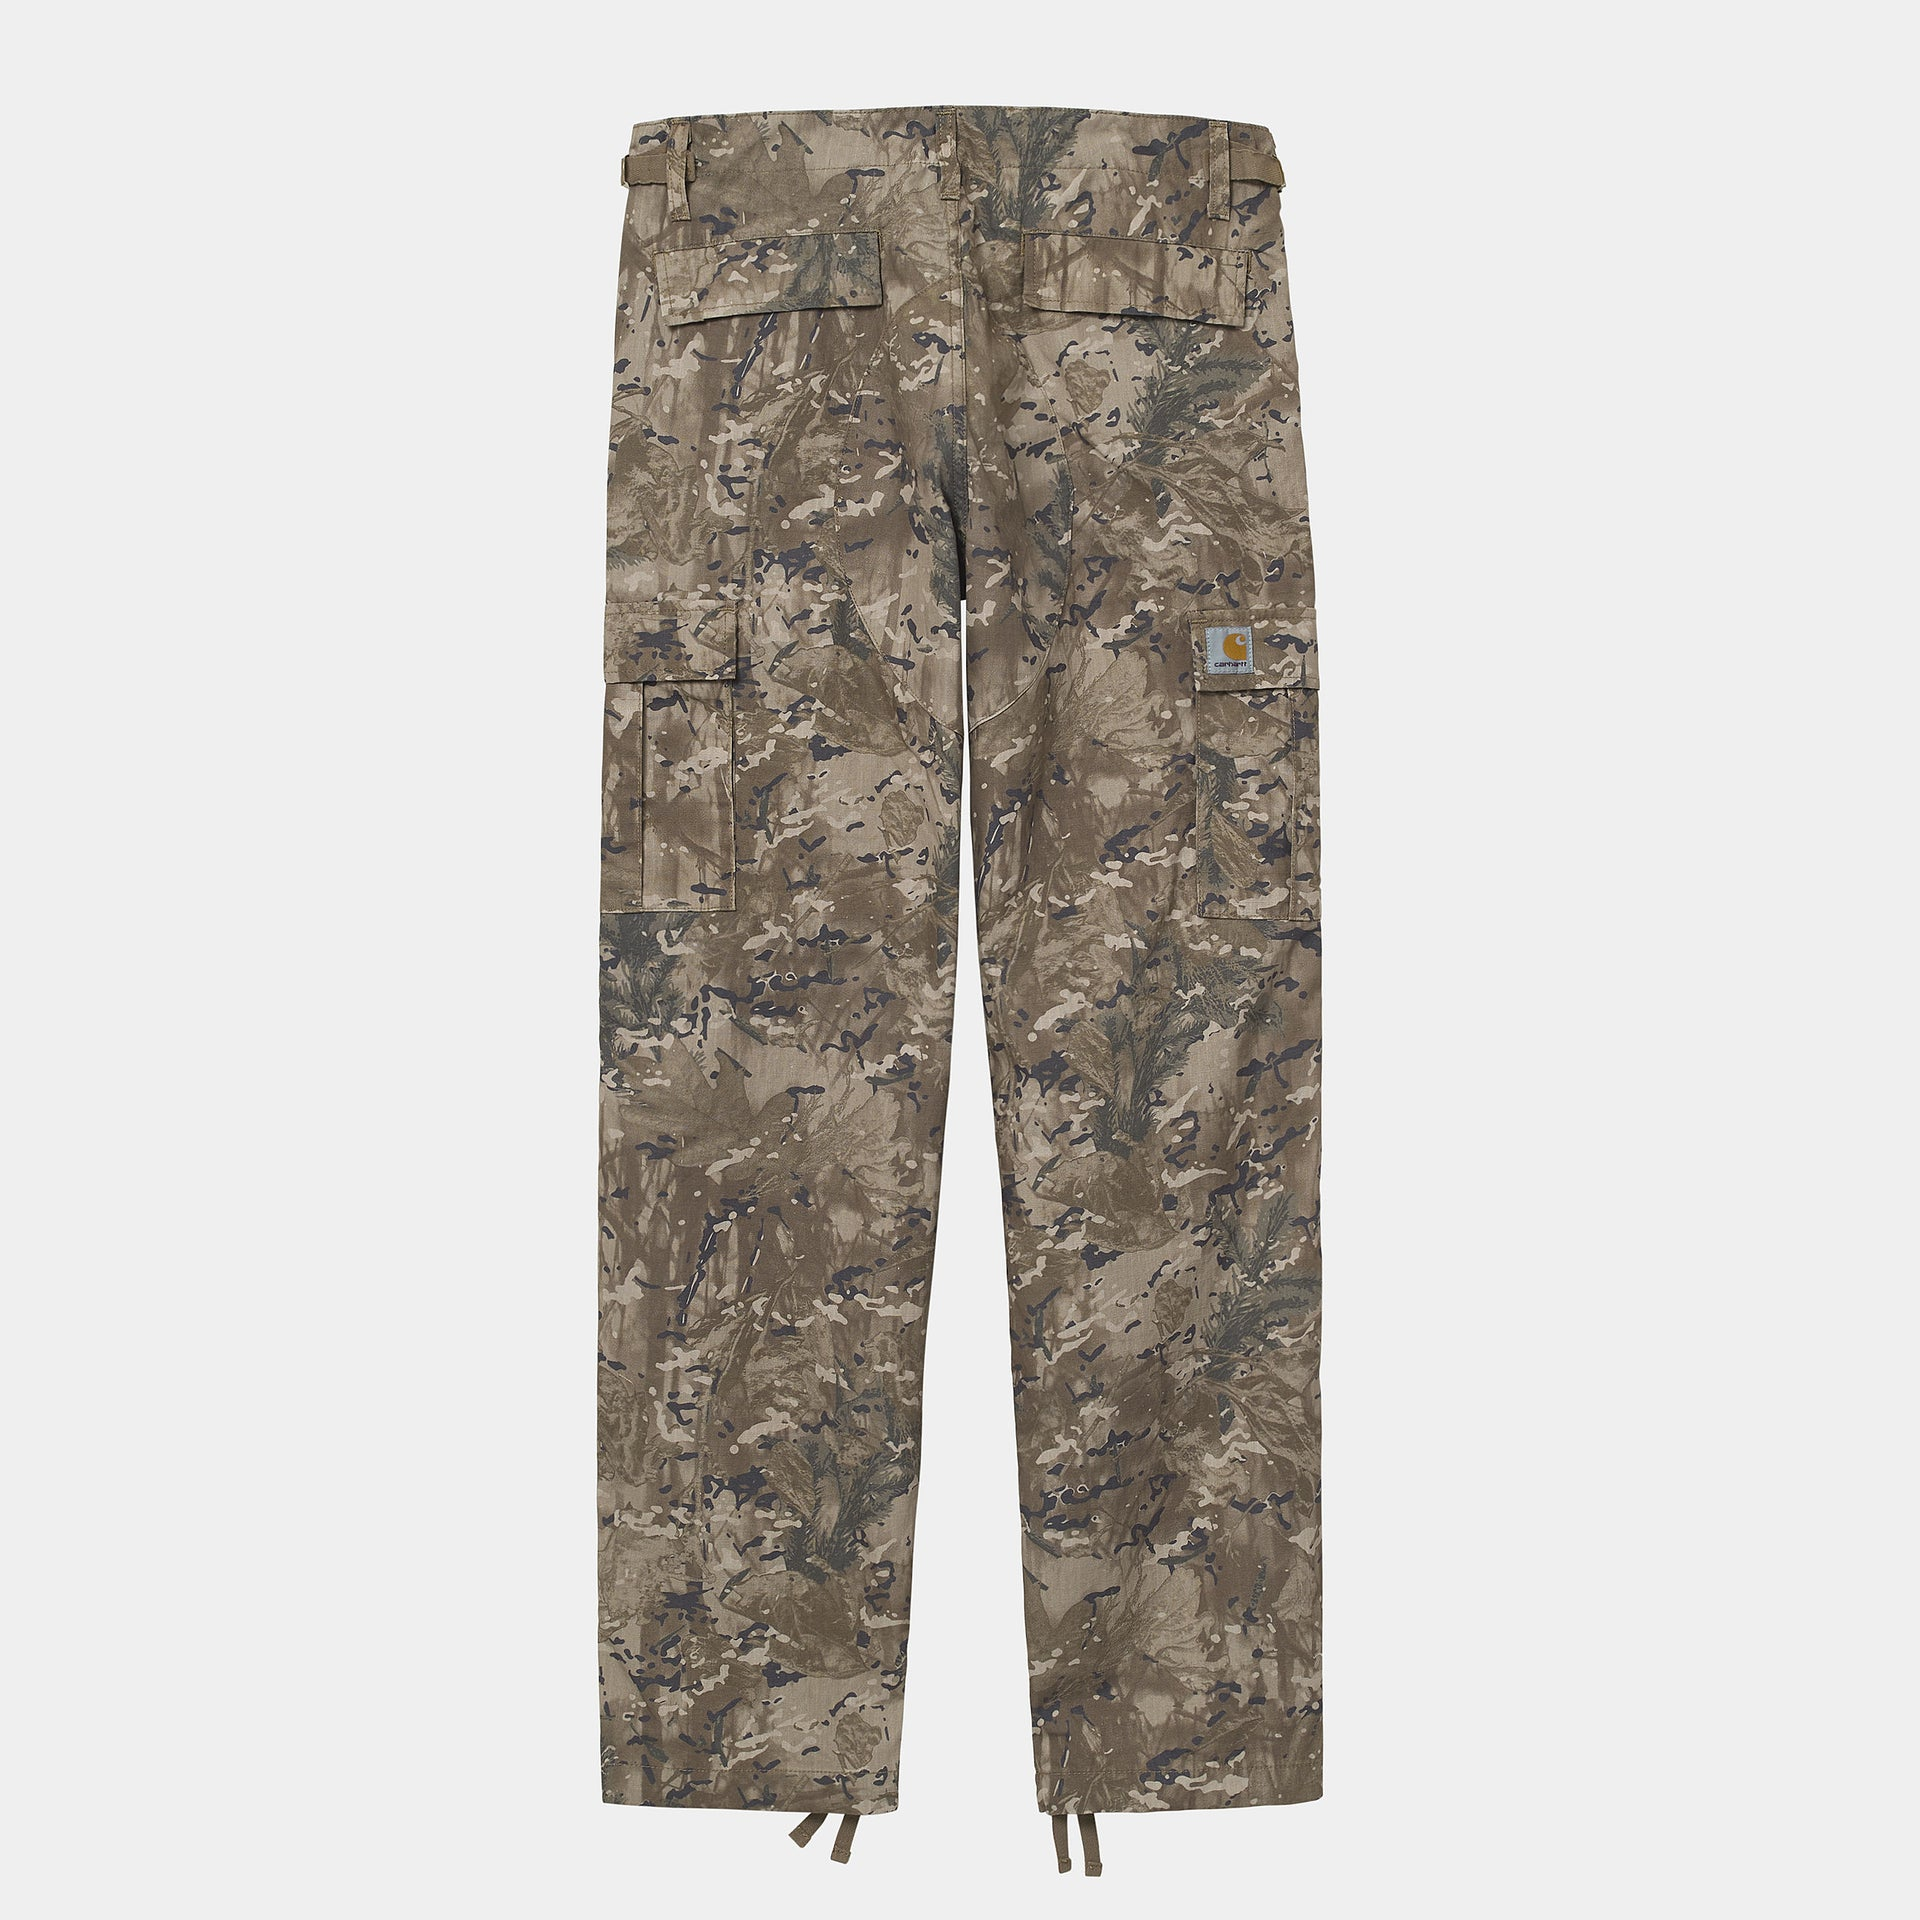 AVIATION PANT CAMO COMBI DESERT